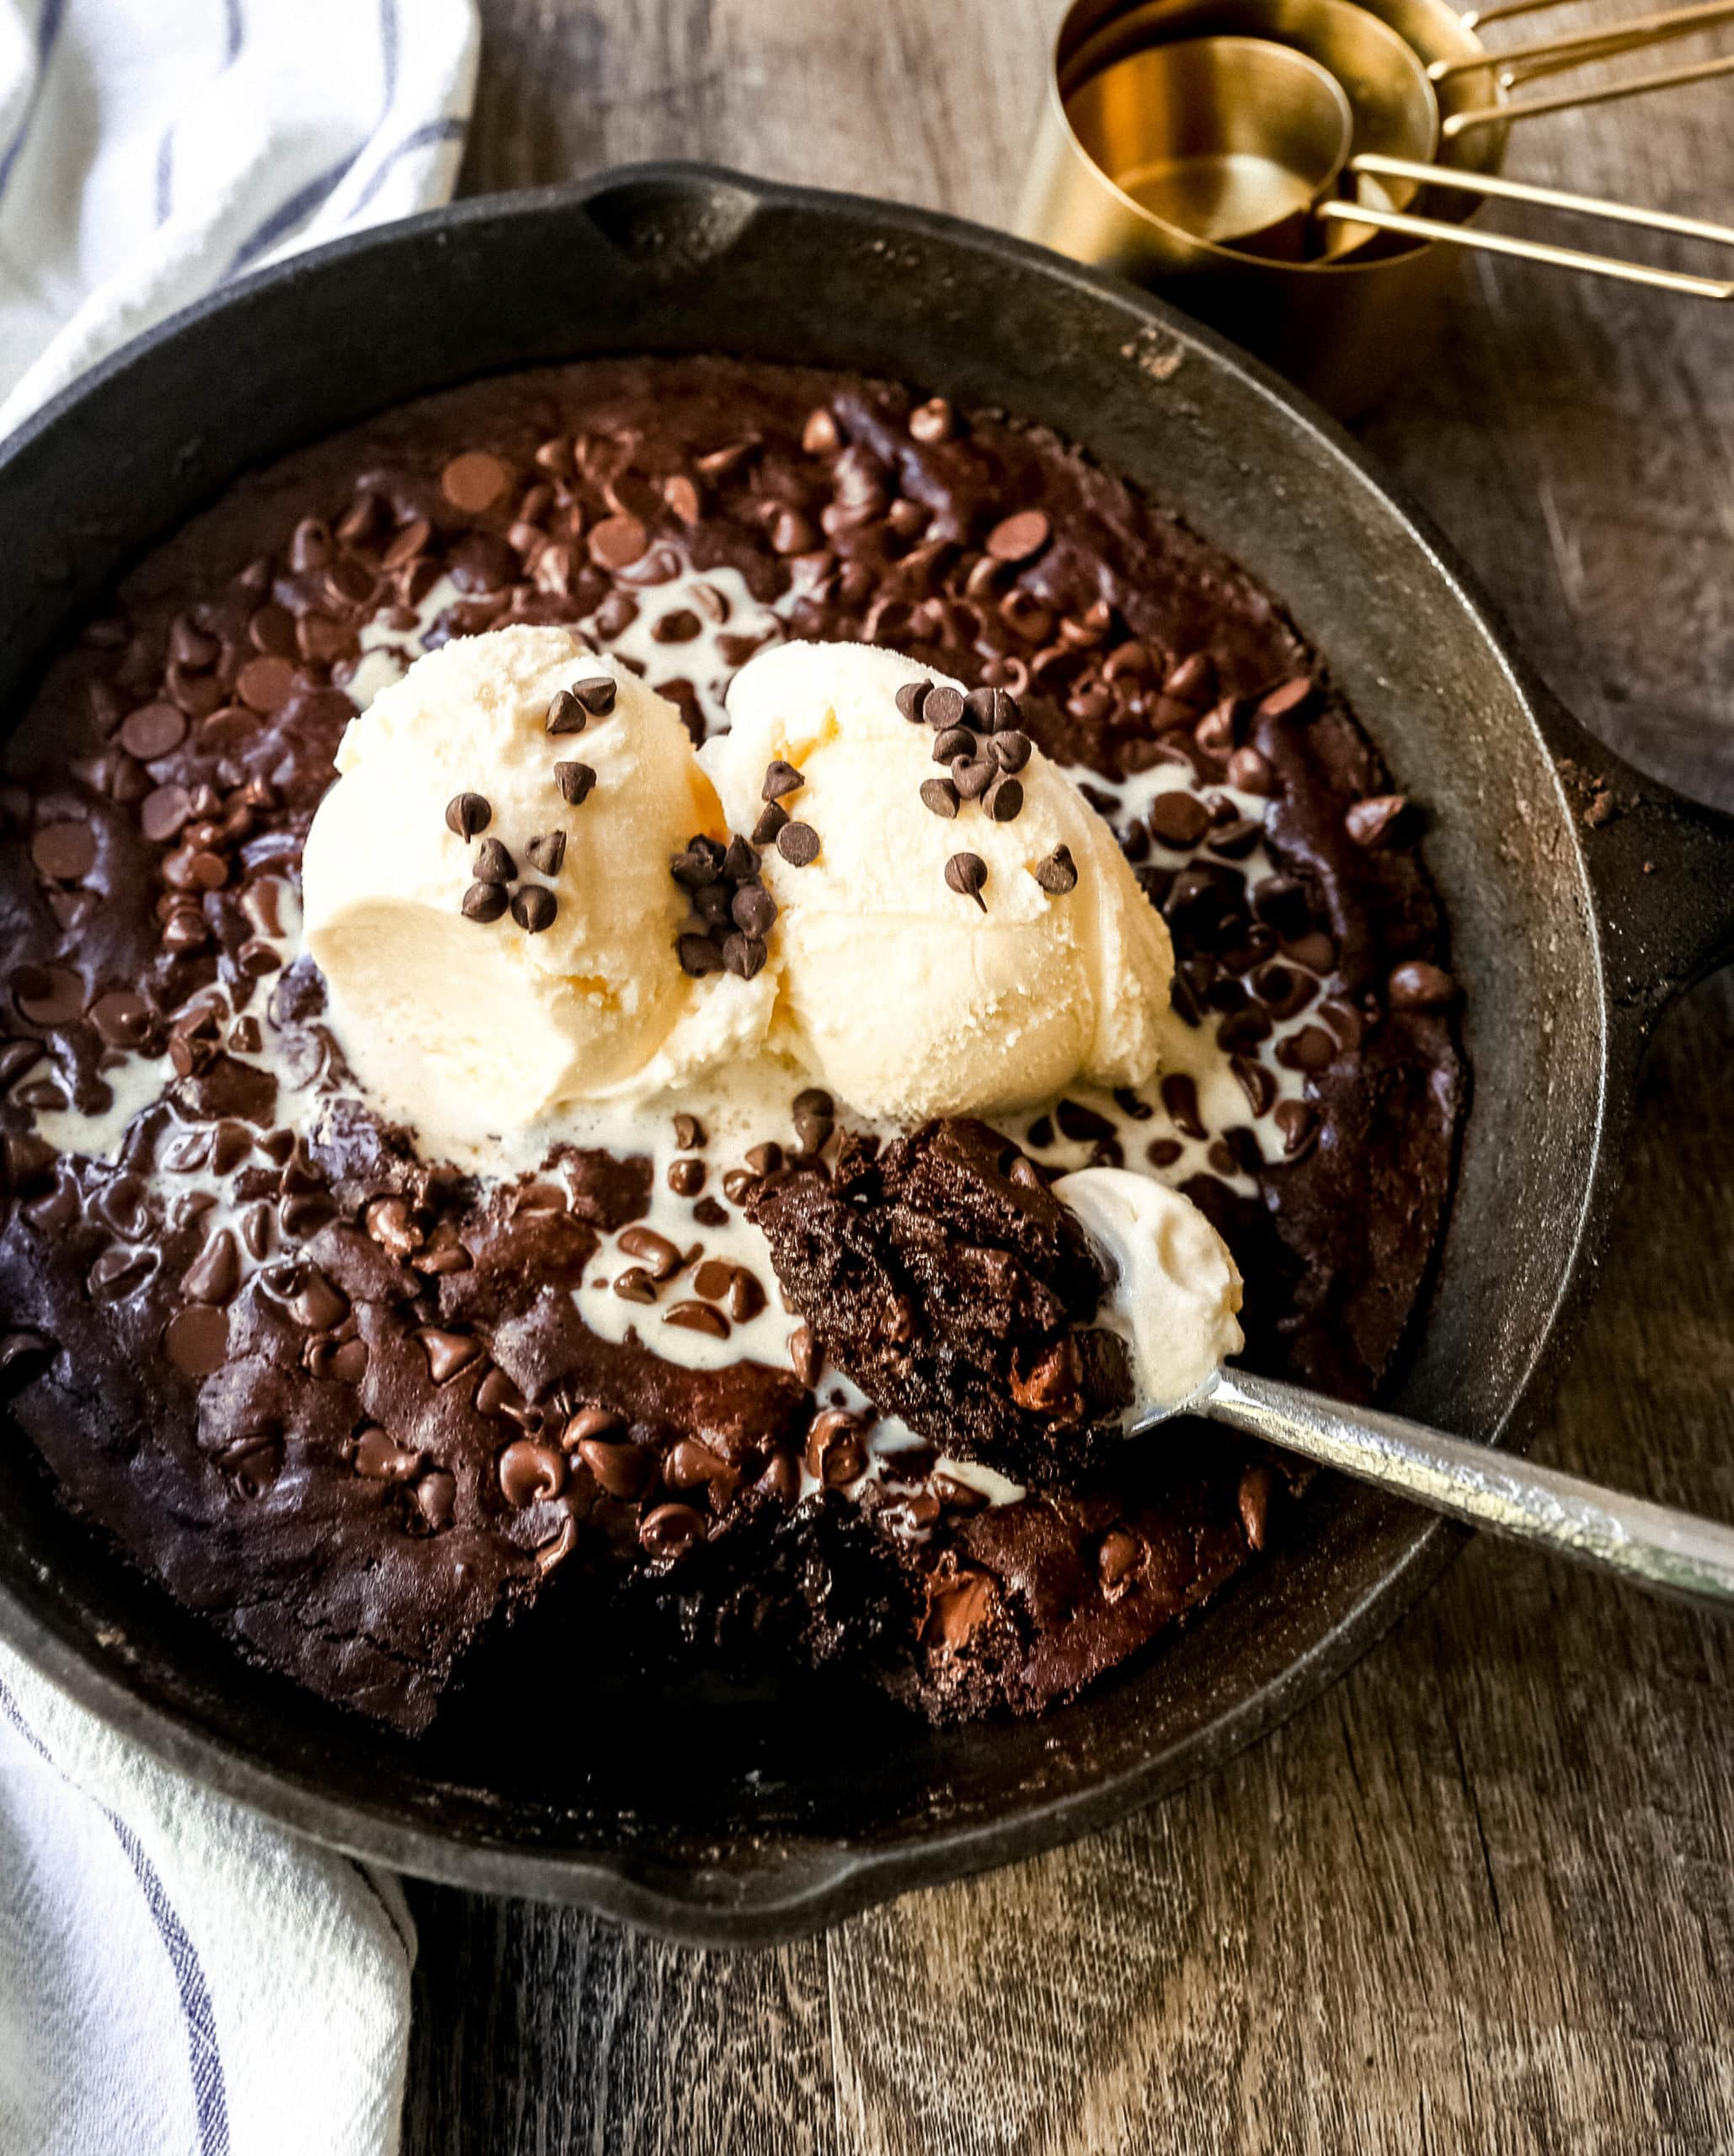 Double Chocolate Chocolate Chip Skillet Cookie Rich, chewy double chocolate chip cookie baked in a cast-iron skillet and topped with ice cream. www.modernhoney.com #doublechocolatechipskilletcookie #skilletcookie